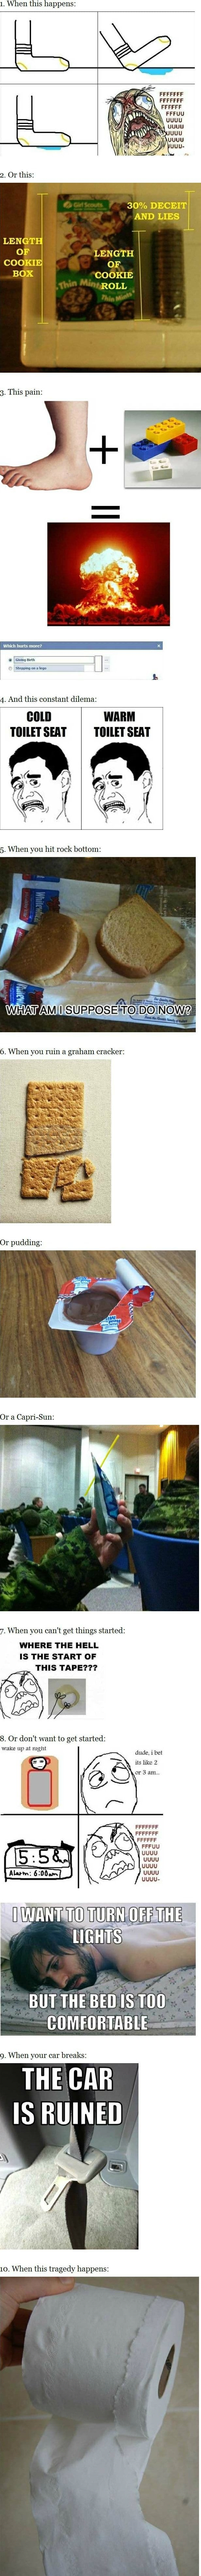 10-most-annoying-things-ever